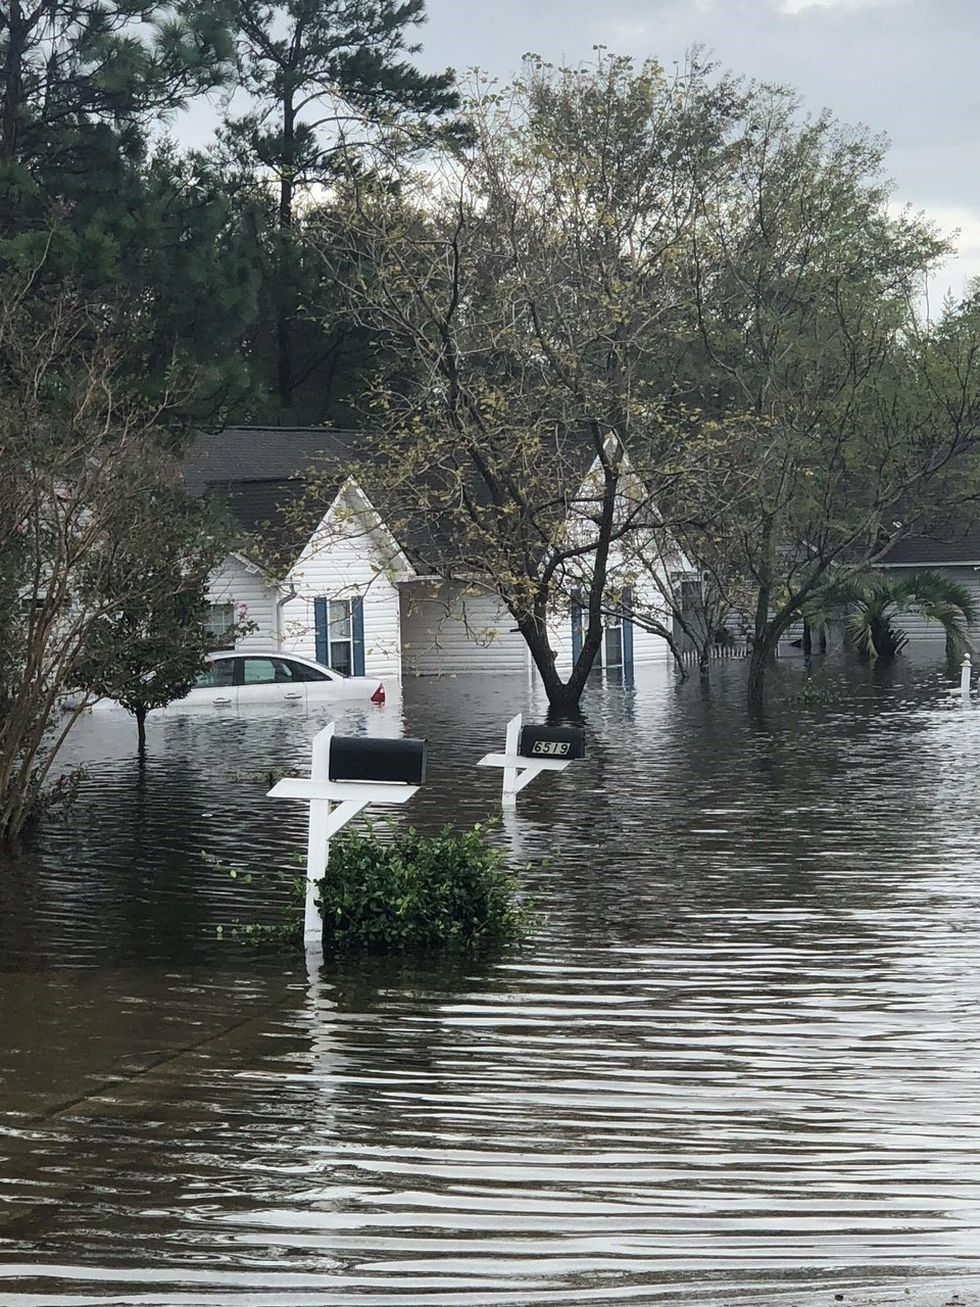 Homes saw significant flooding during Hurricane Florence (Source: Mattie McMurray)